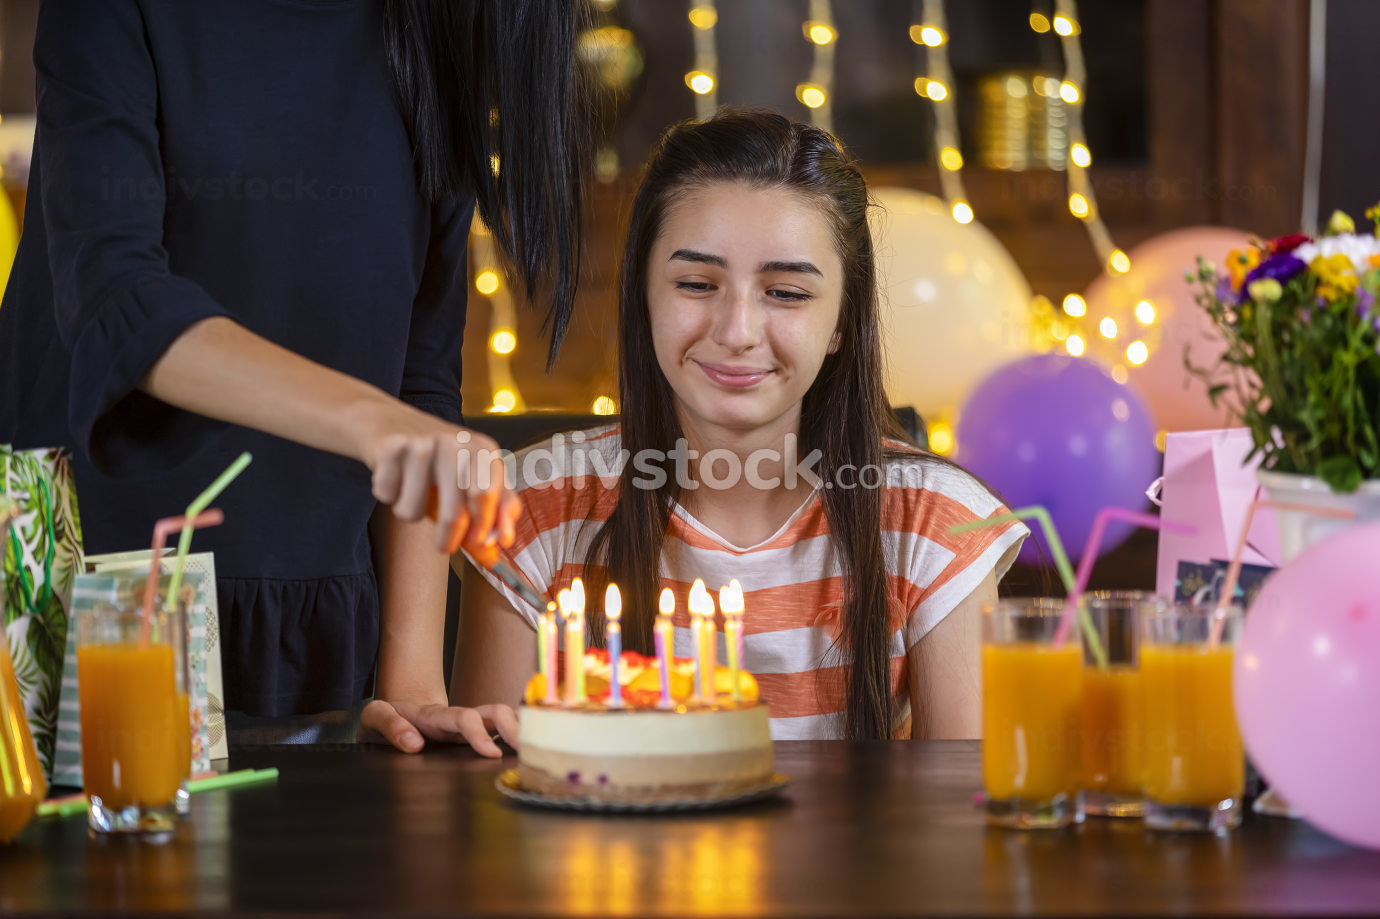 Mother lighting candles on her daughter birthday cake at party